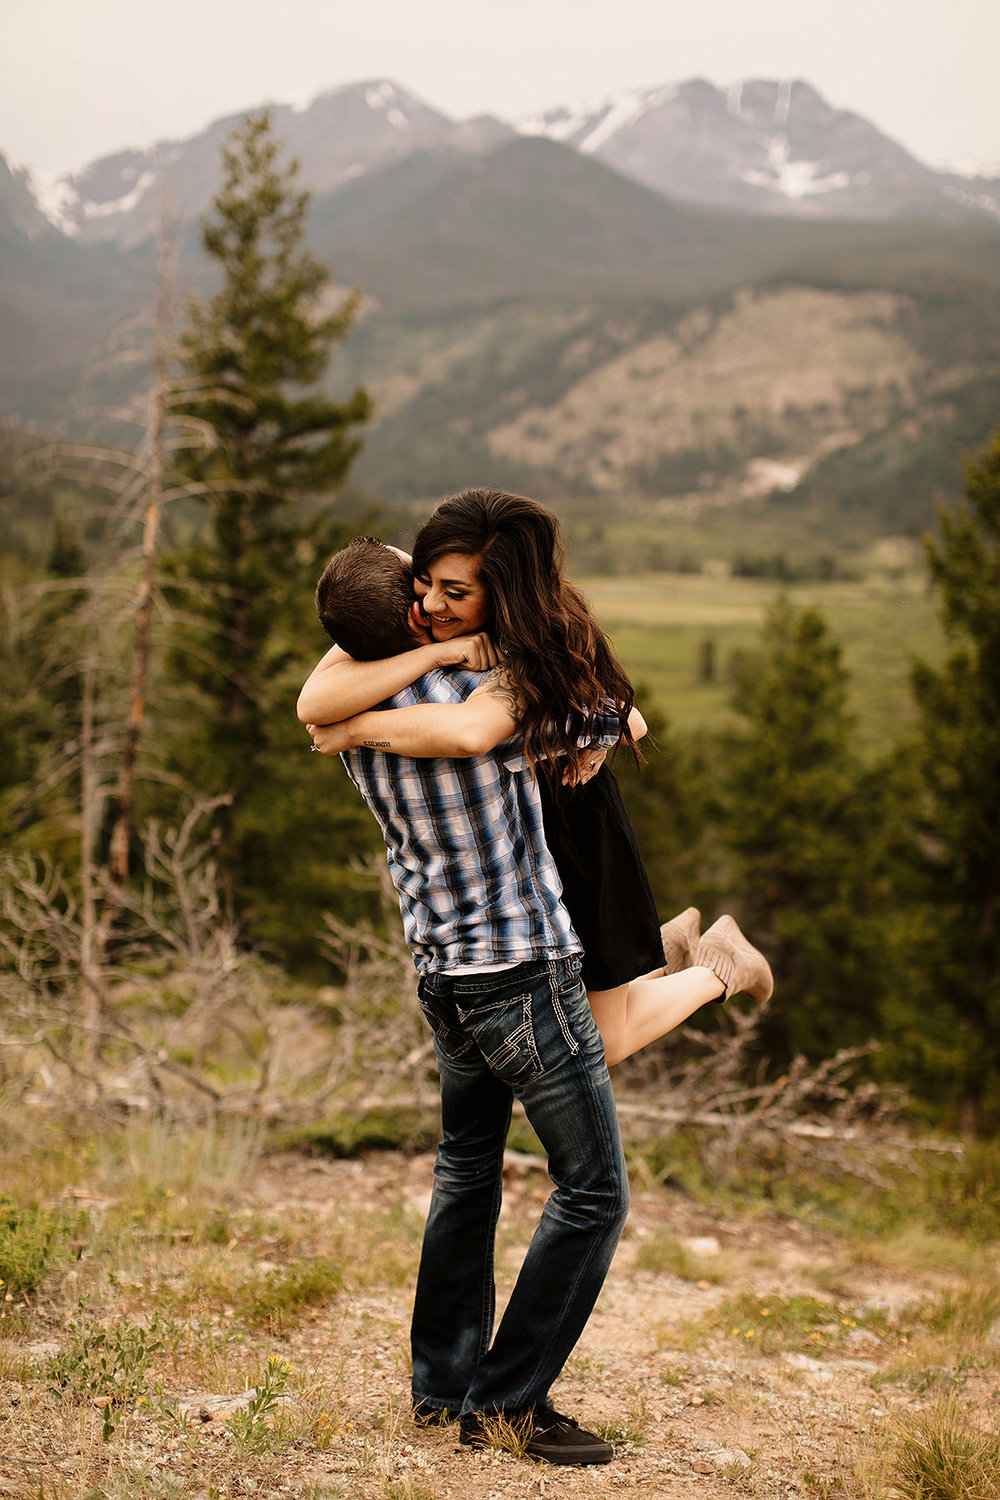 rocky mountain national park photoshoot session photography photographer liz osban colorado engagement elopement love couples film wyoming adventure wedding adrianna devin reikens